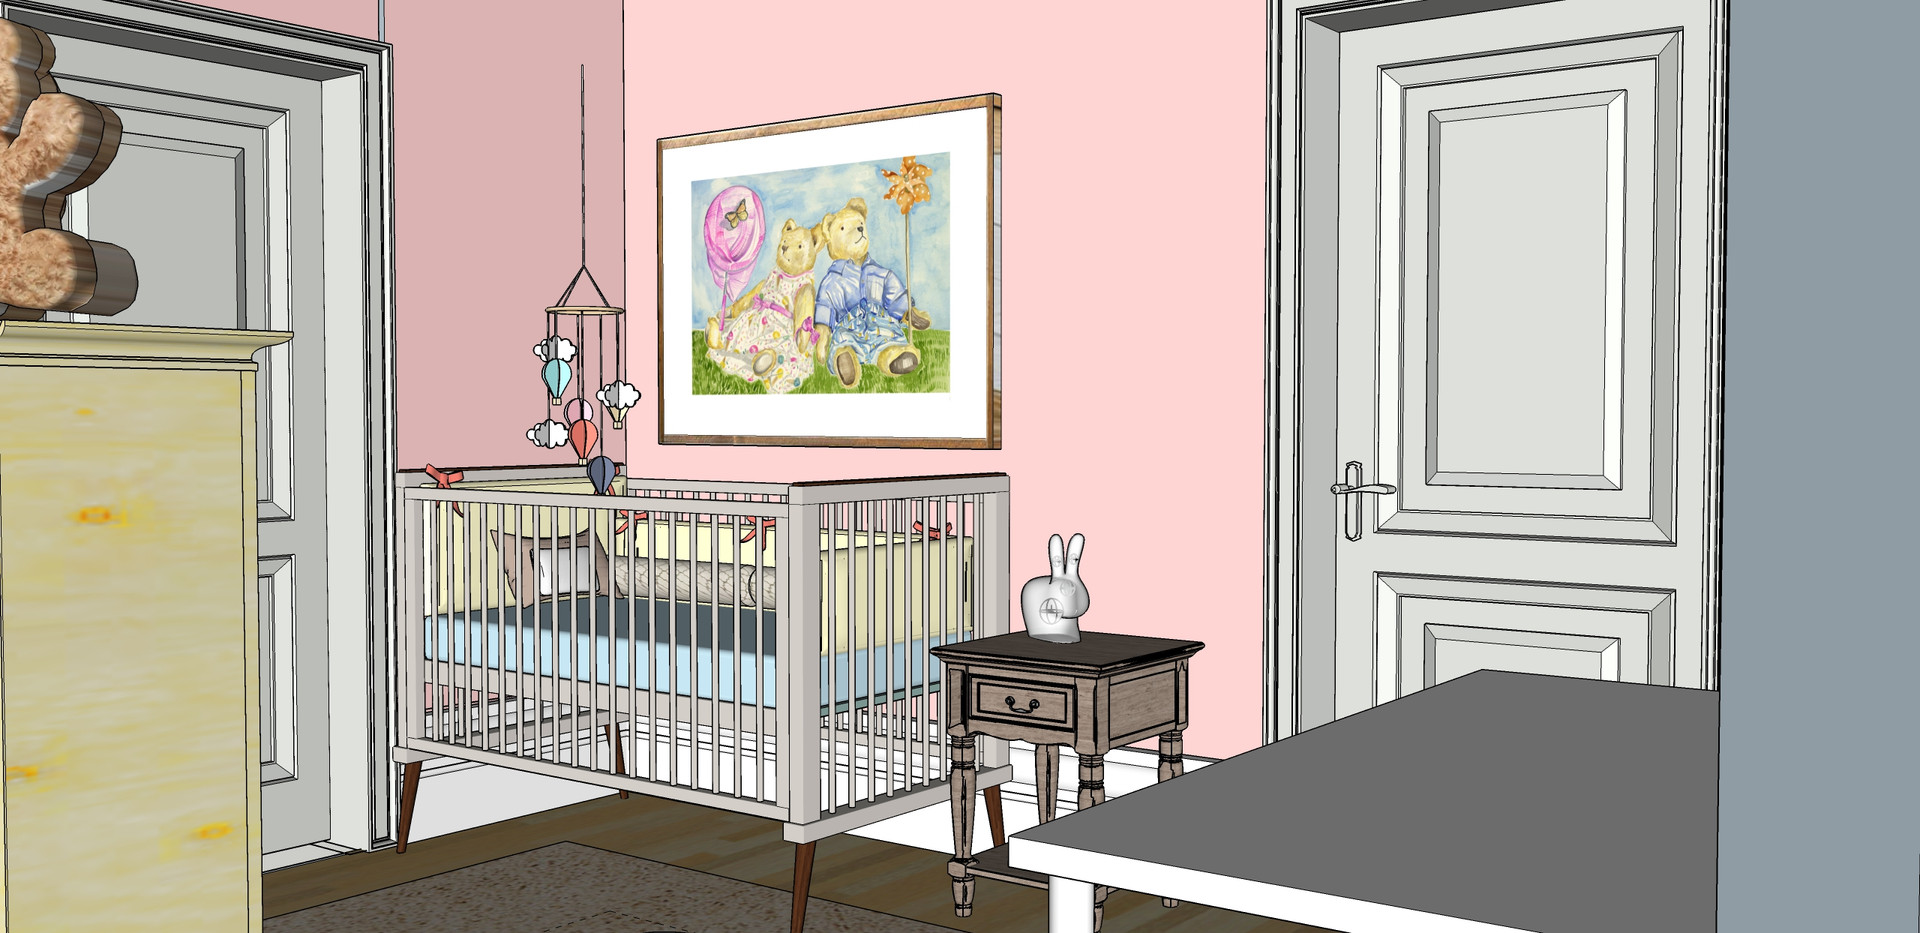 Baby Room - Furniture layout - Cot view.